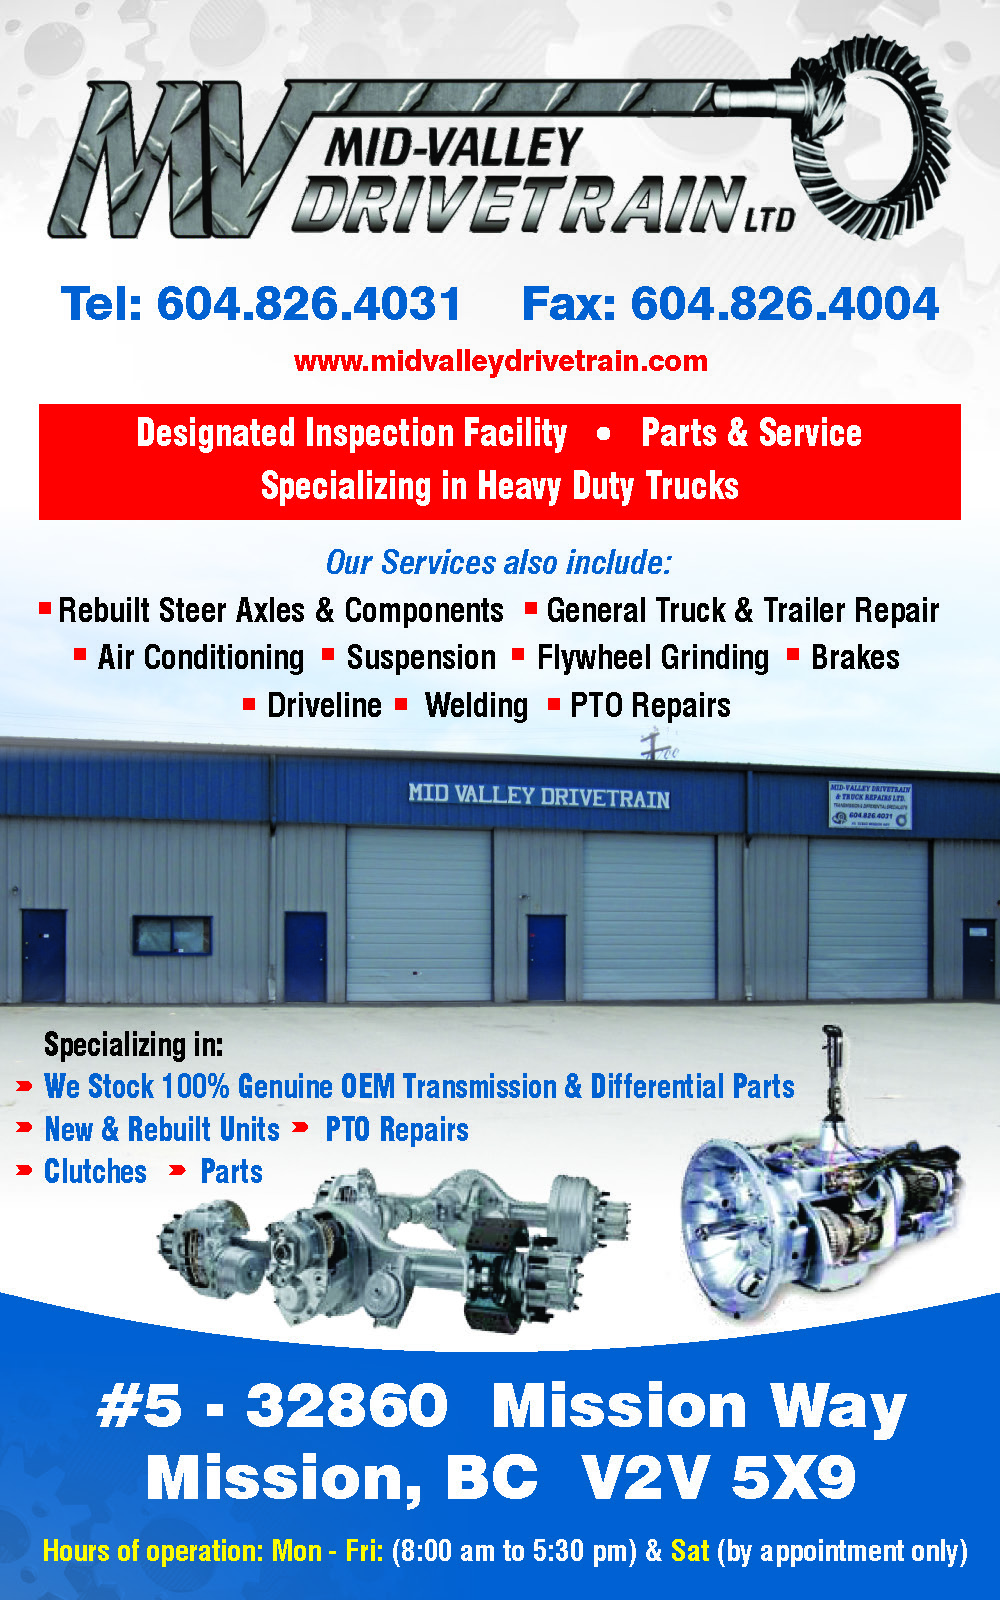 mid-valley-drivetrain-truck-repairs-inc-cLO7xok.jpeg